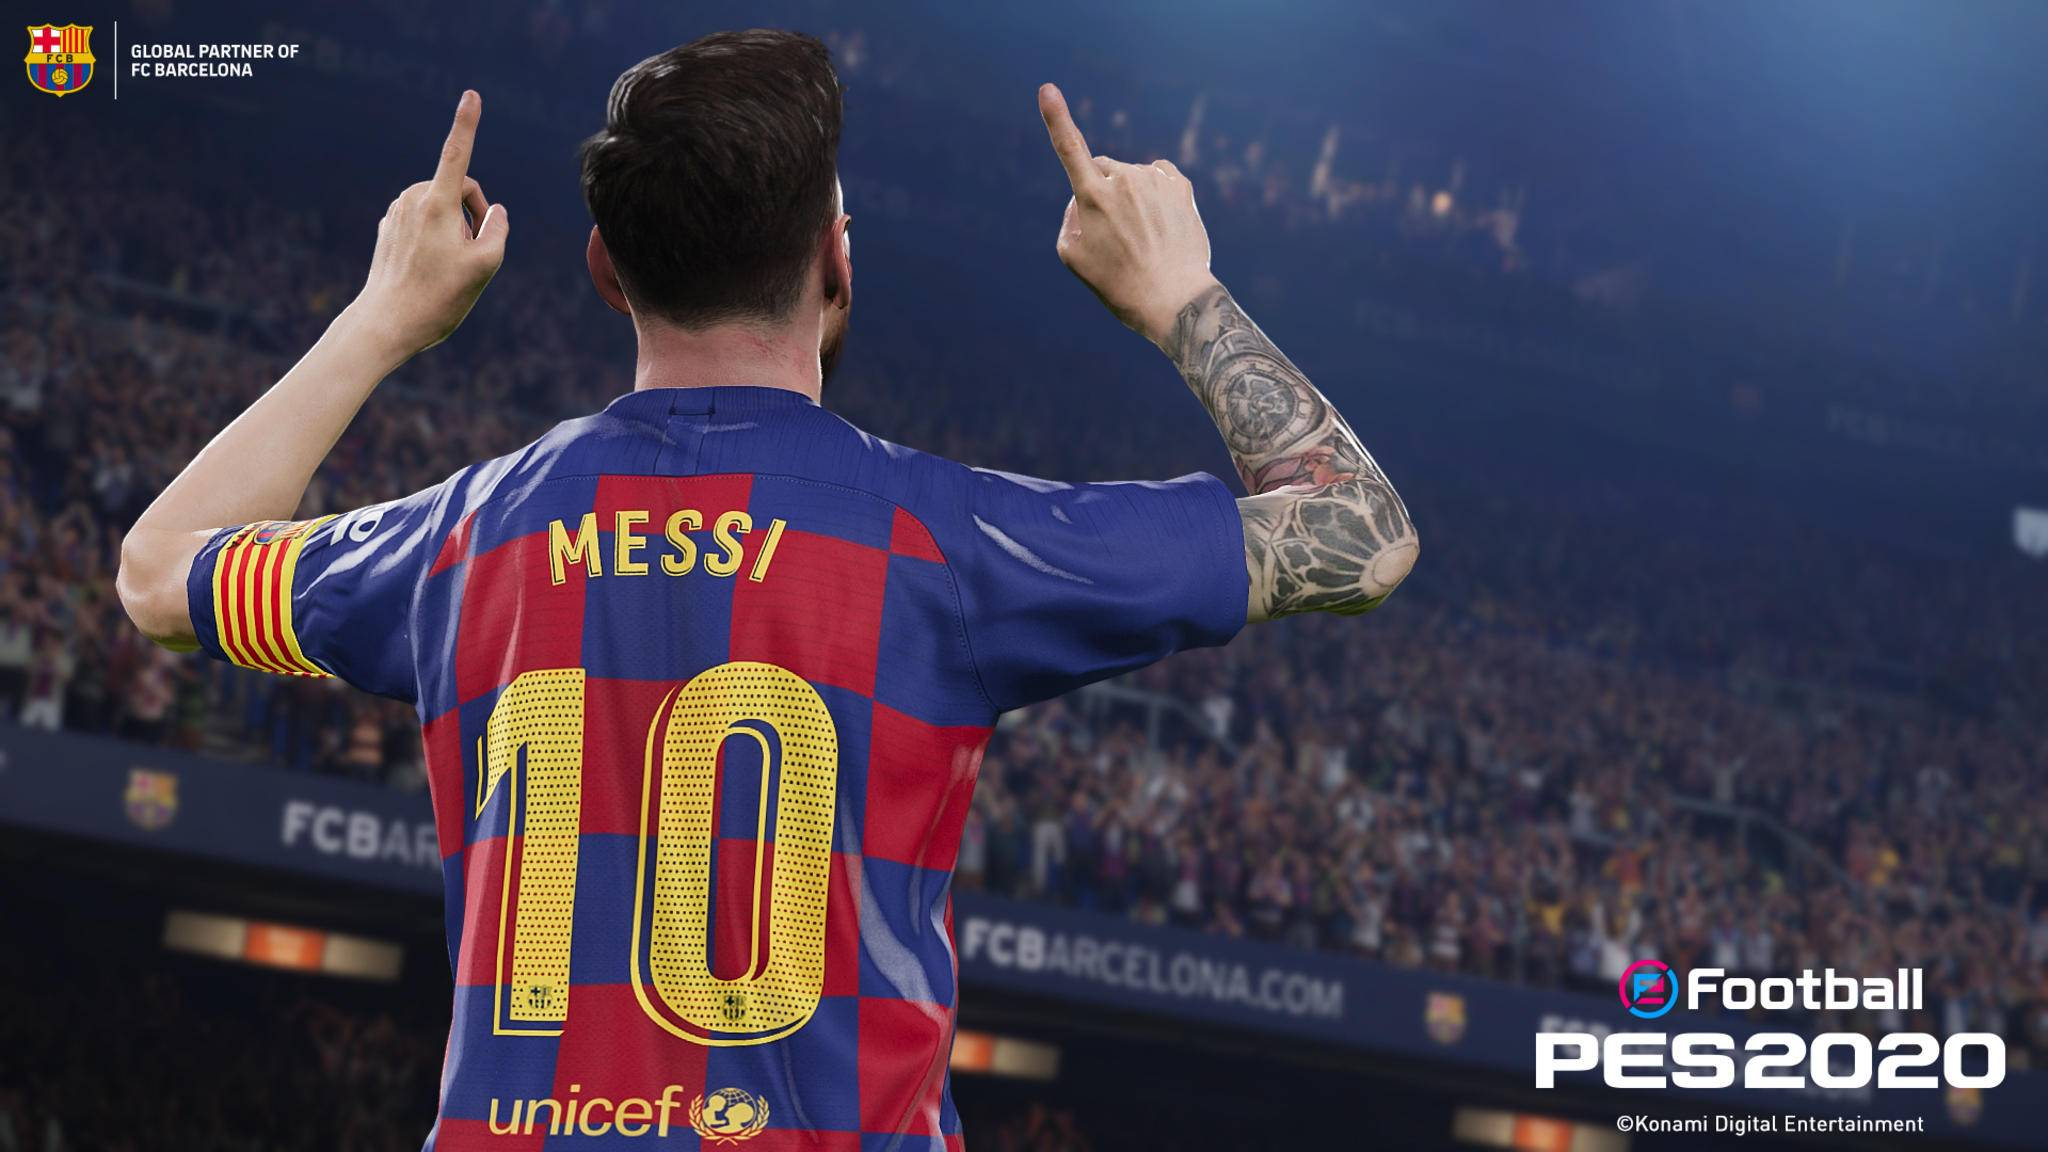 PES-2020-messi-jubel